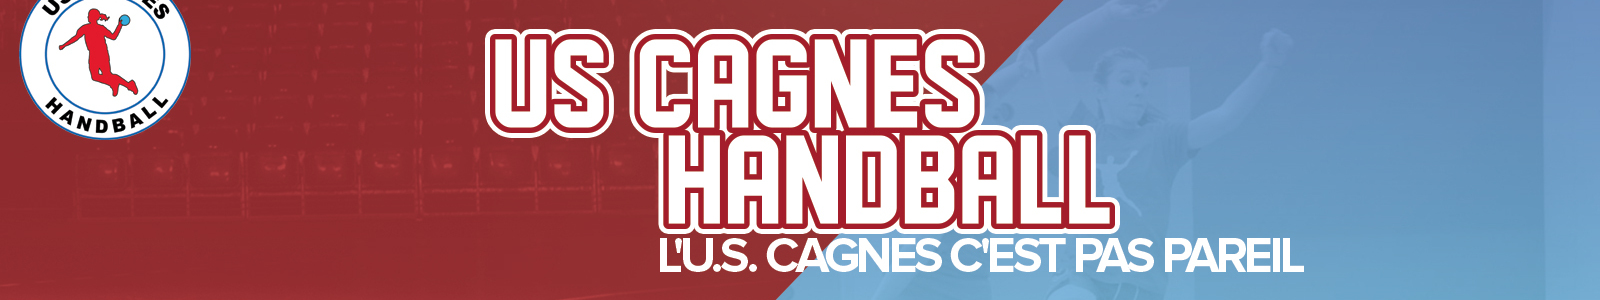 US CAGNES HANDBALL : site officiel du club de handball de CAGNES SUR MER - clubeo